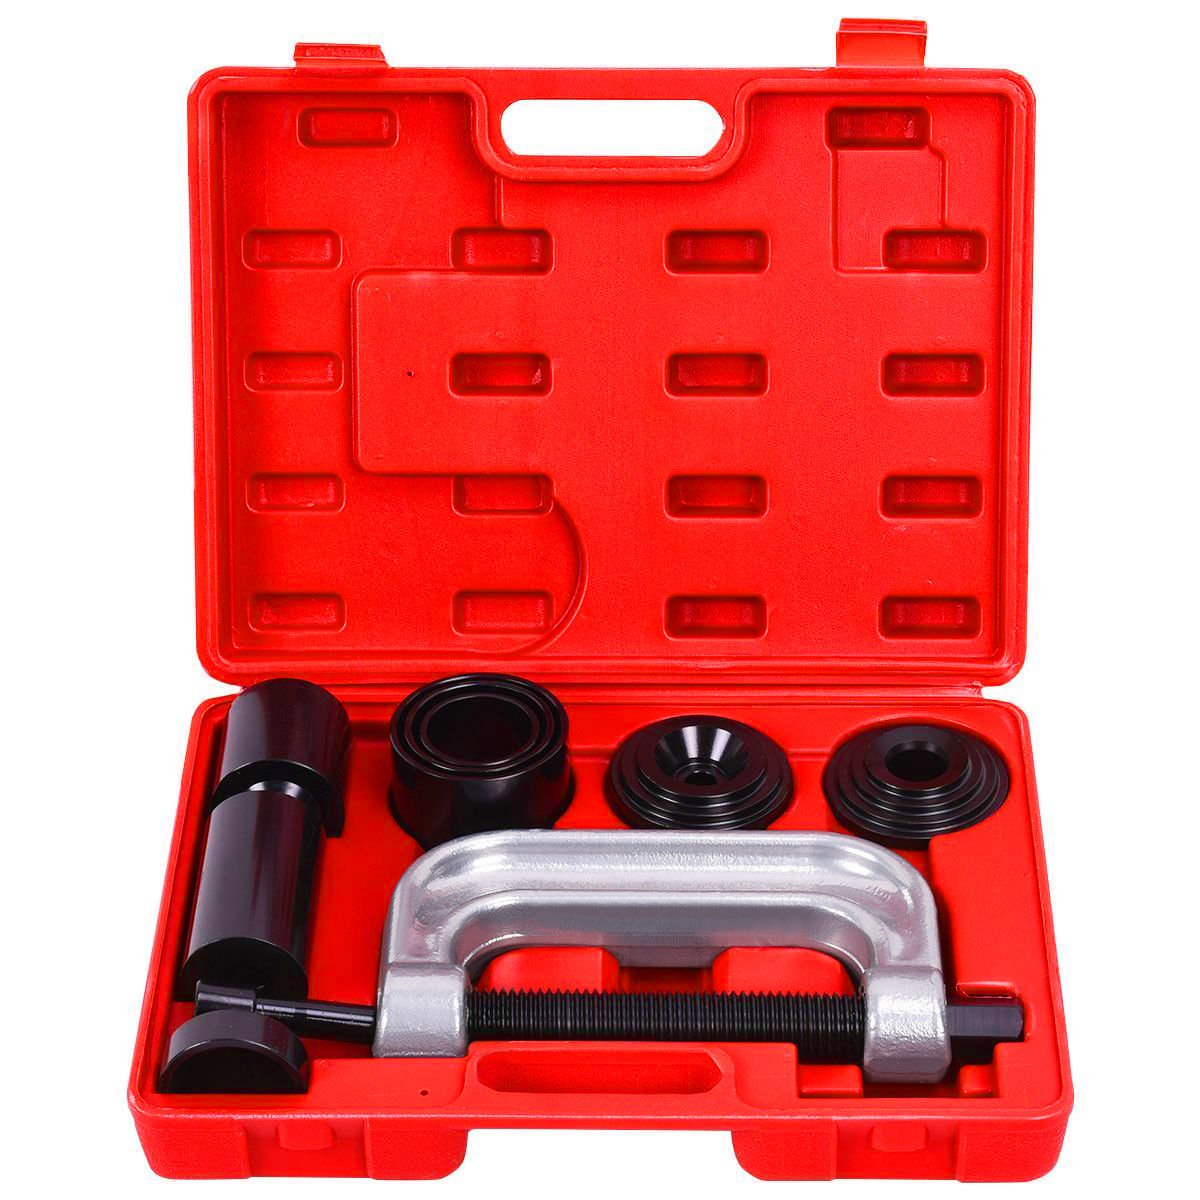 Goplus 4 in 1 Ball Joint Service Tool Kit 2WD & 4WD Remover Installer w/ 4-Wheel Drive Adapters by Goplus